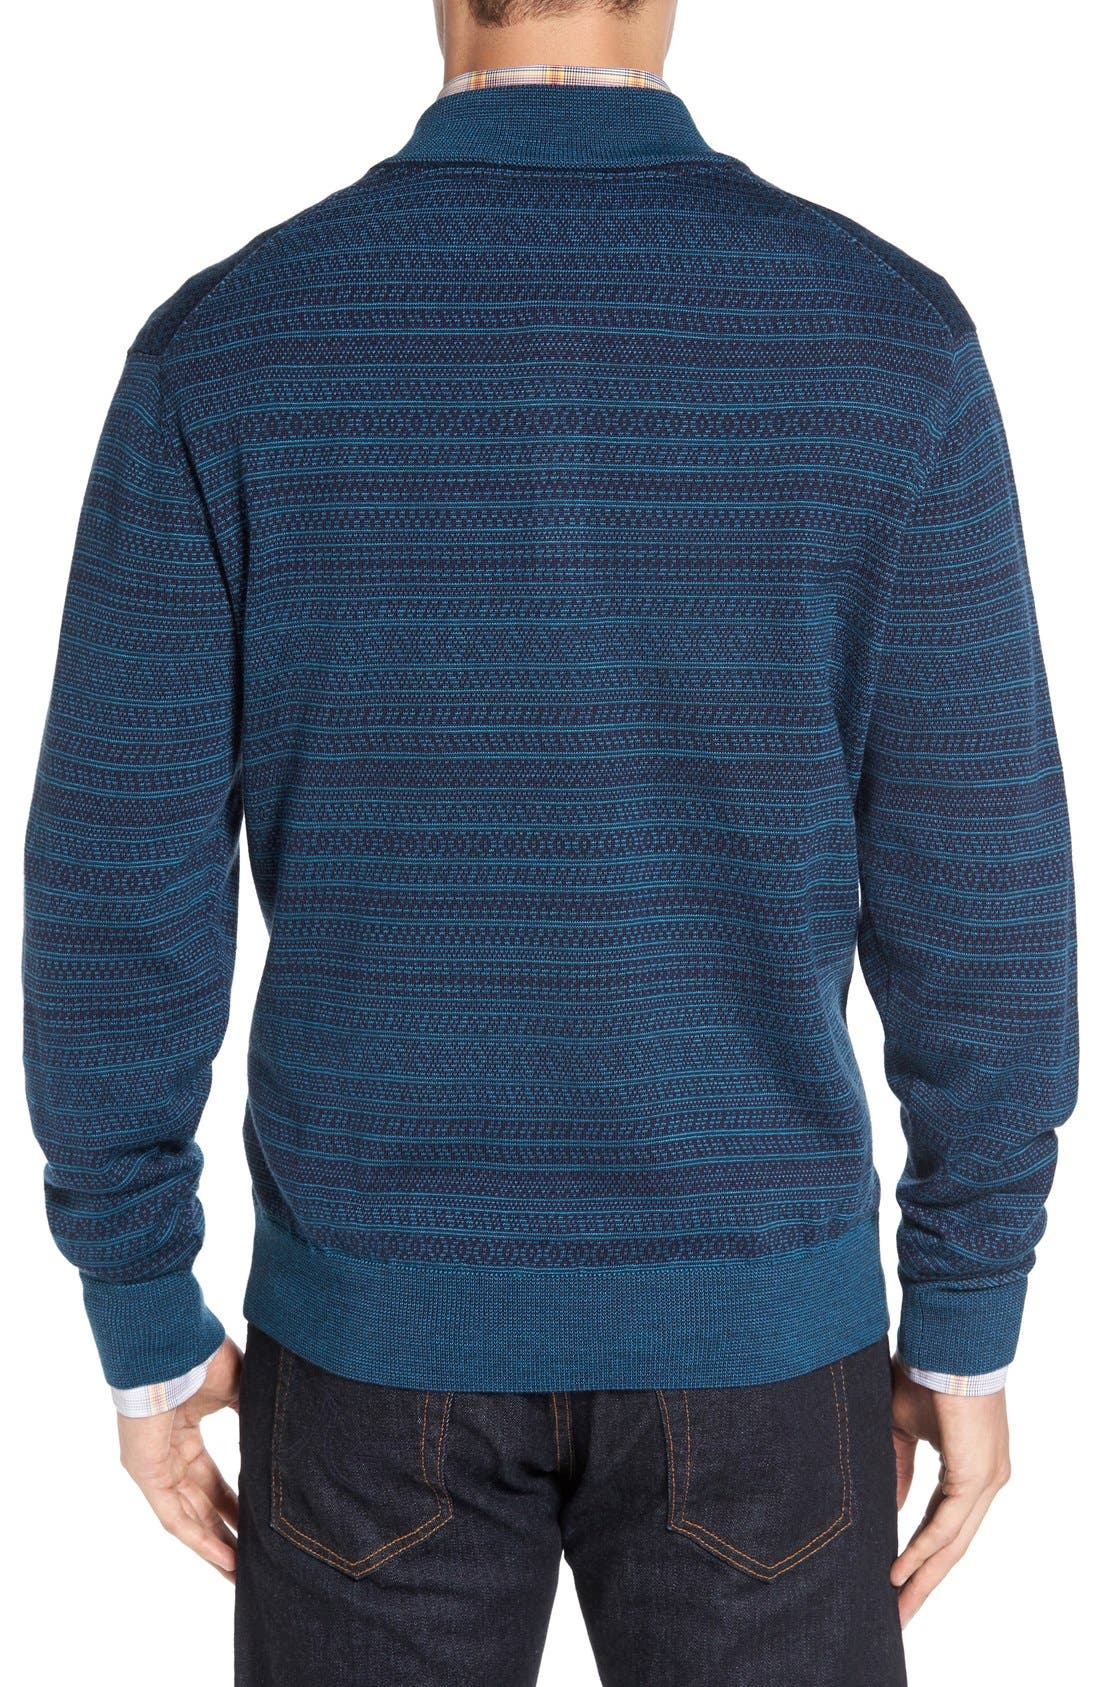 Alternate Image 2  - Cutter & Buck 'Douglas Forest' Jacquard Wool Blend Sweater (Big & Tall)